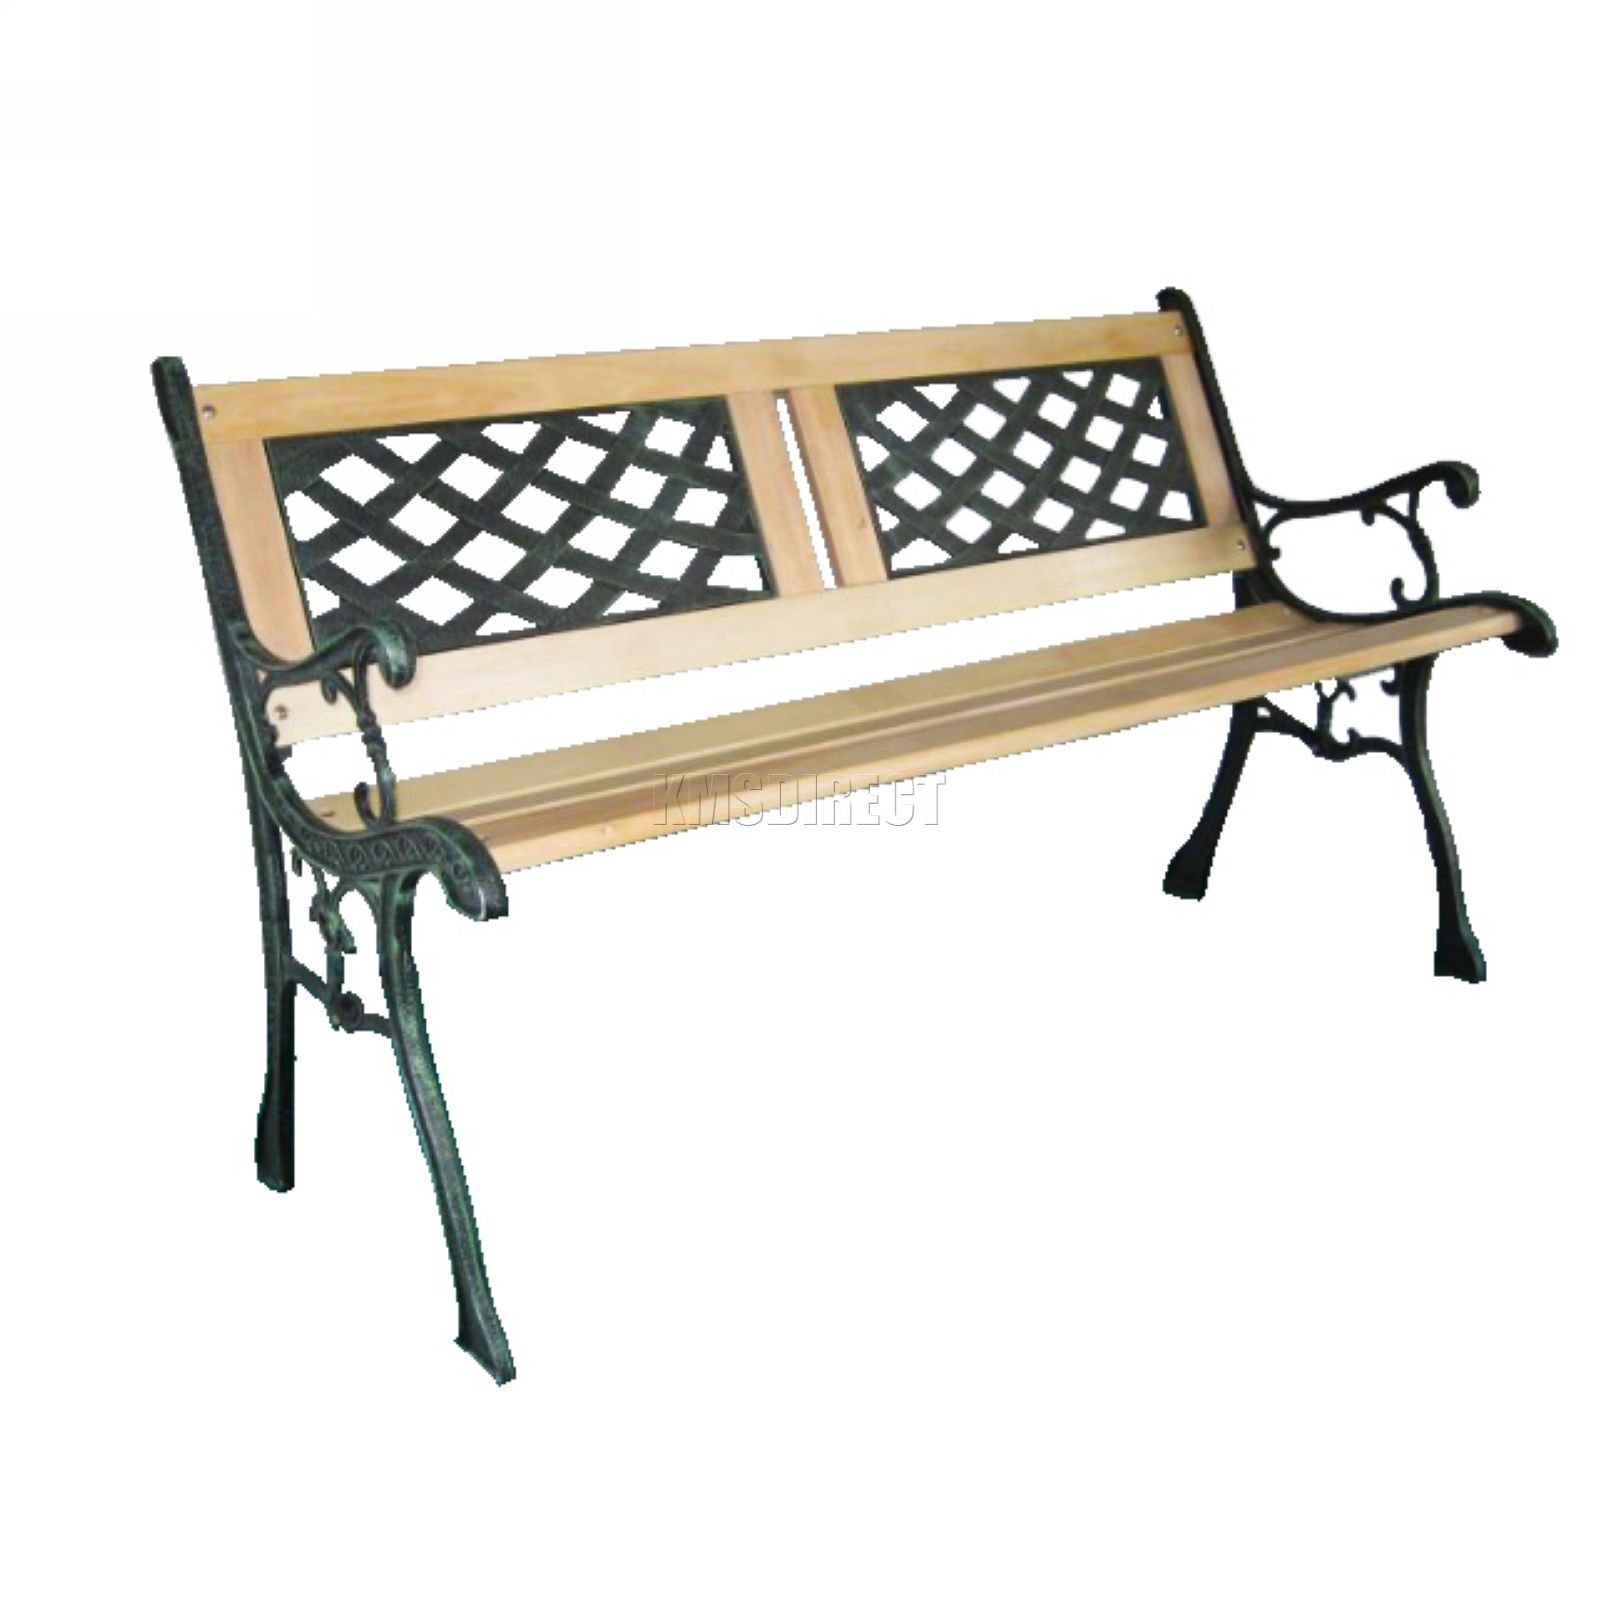 3 Seater Outdoor Wooden Garden Bench Lattice Slat With